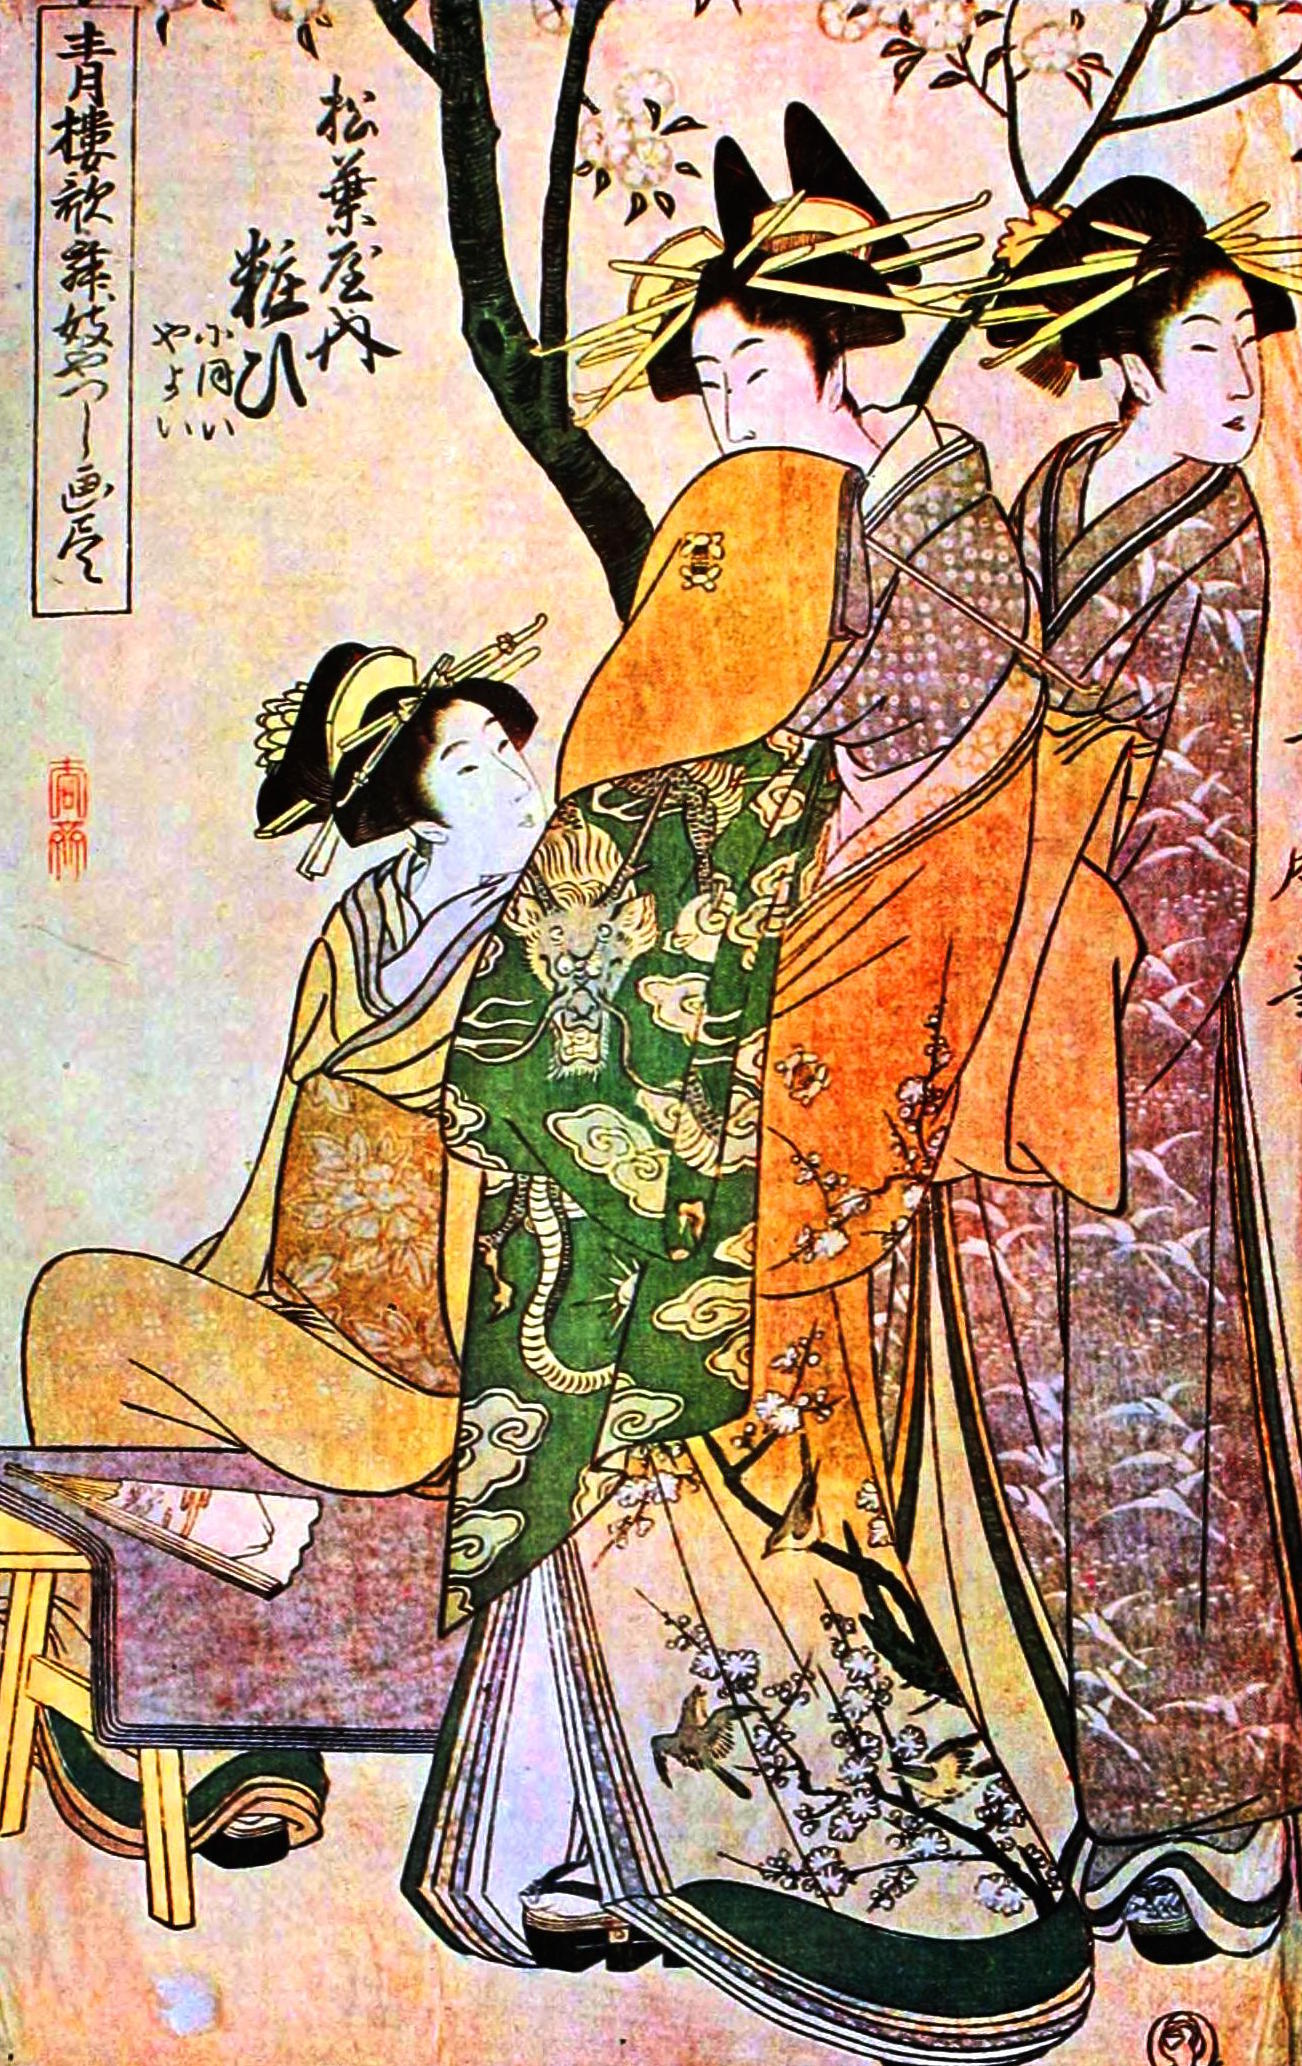 Fiction of Japan in the Middle Ages: a selection of sites